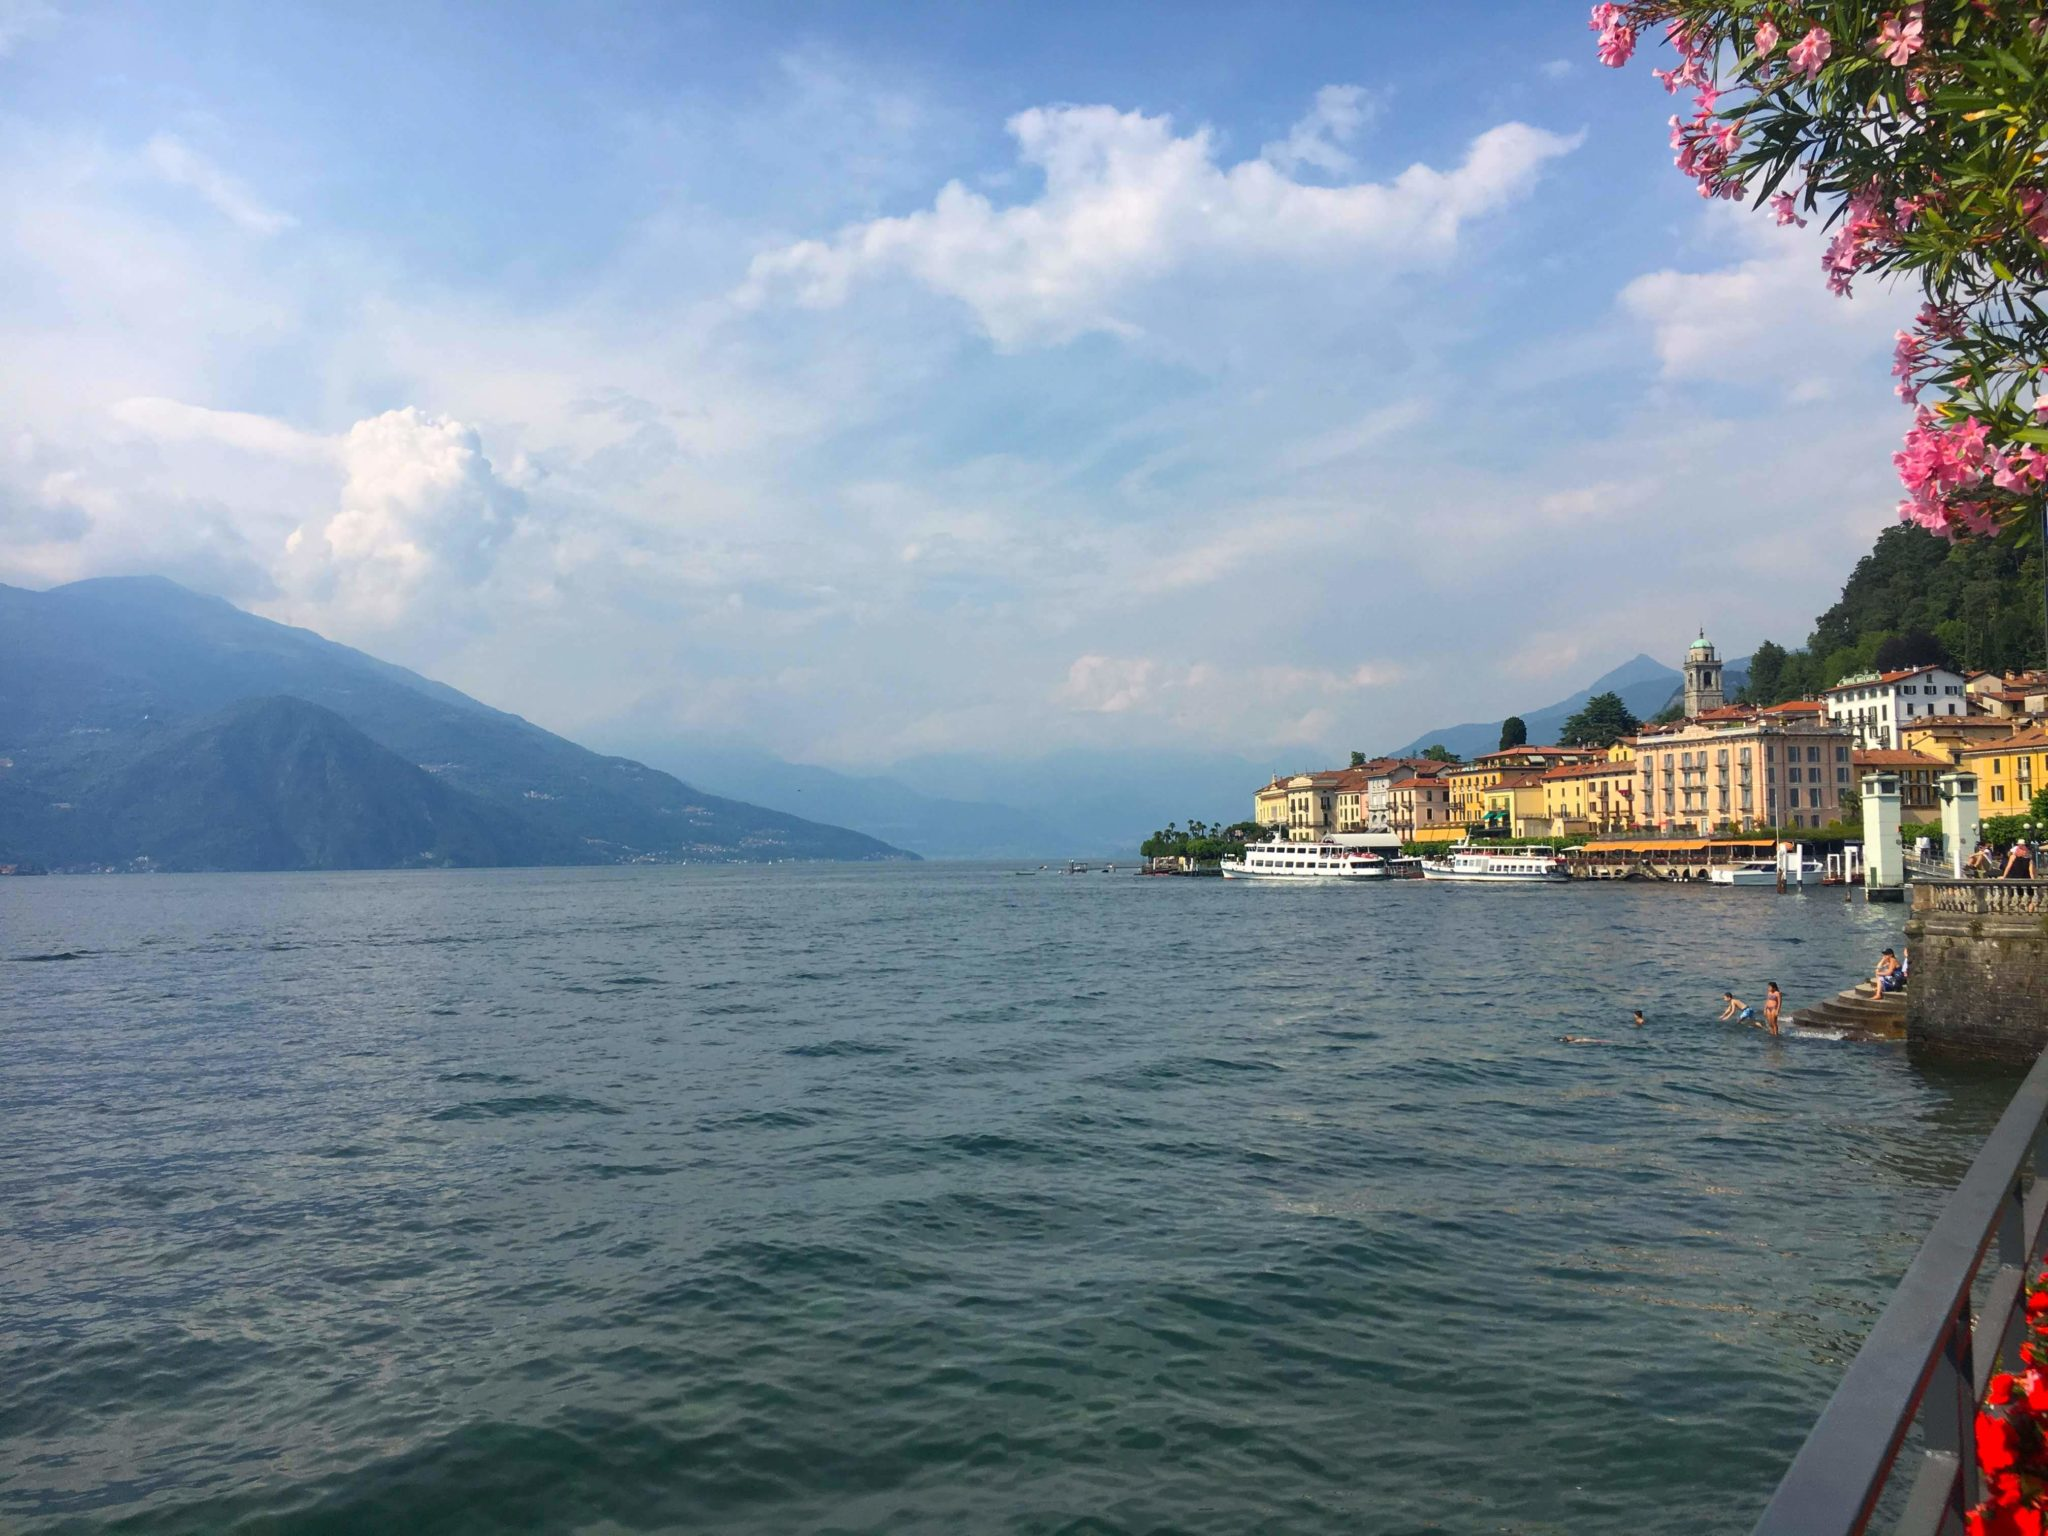 View of Bellagio